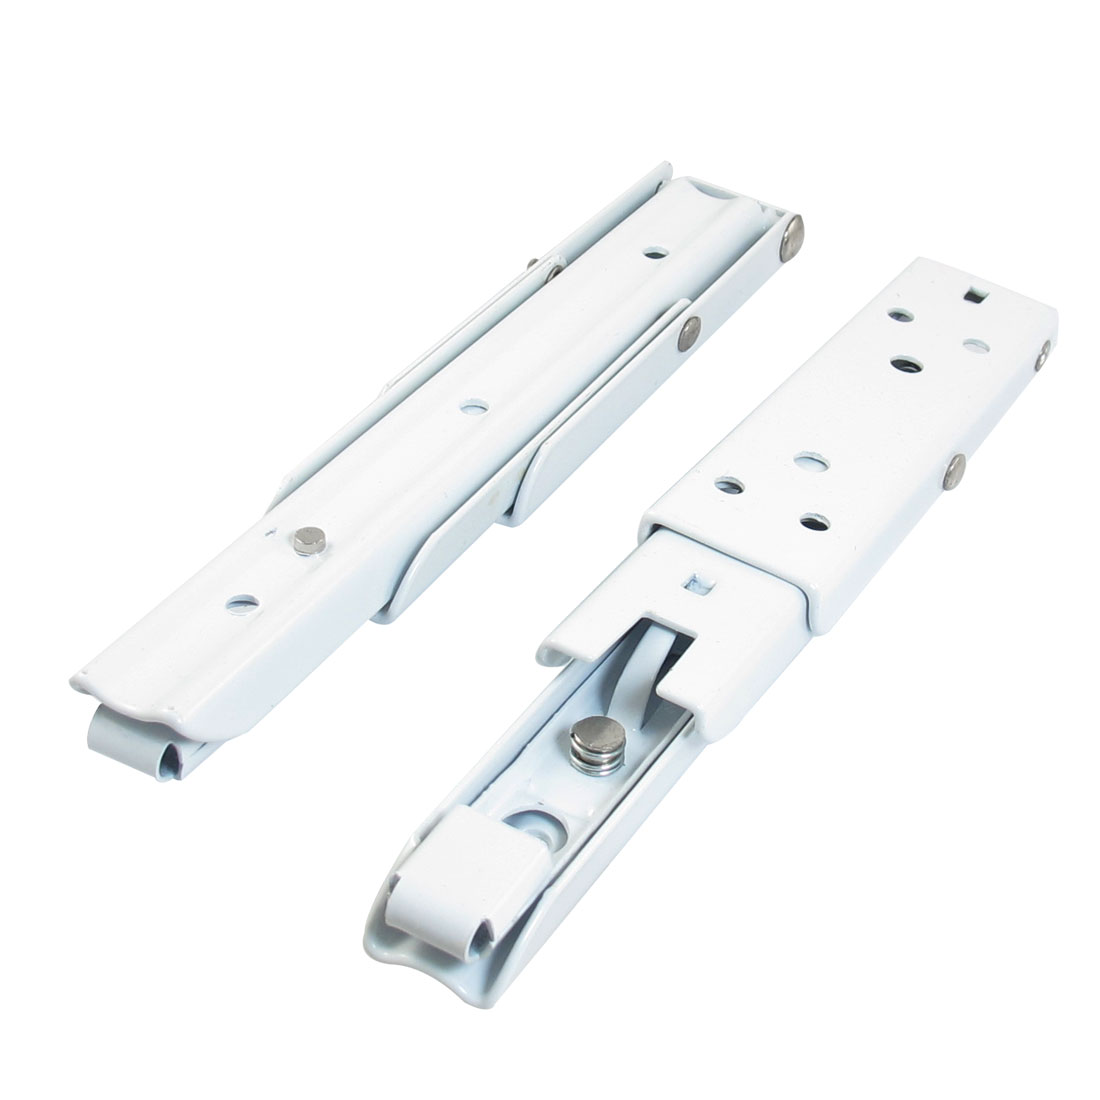 "Store Stainless Steel Right Angle Support Bracket 8"" 2 Pcs"